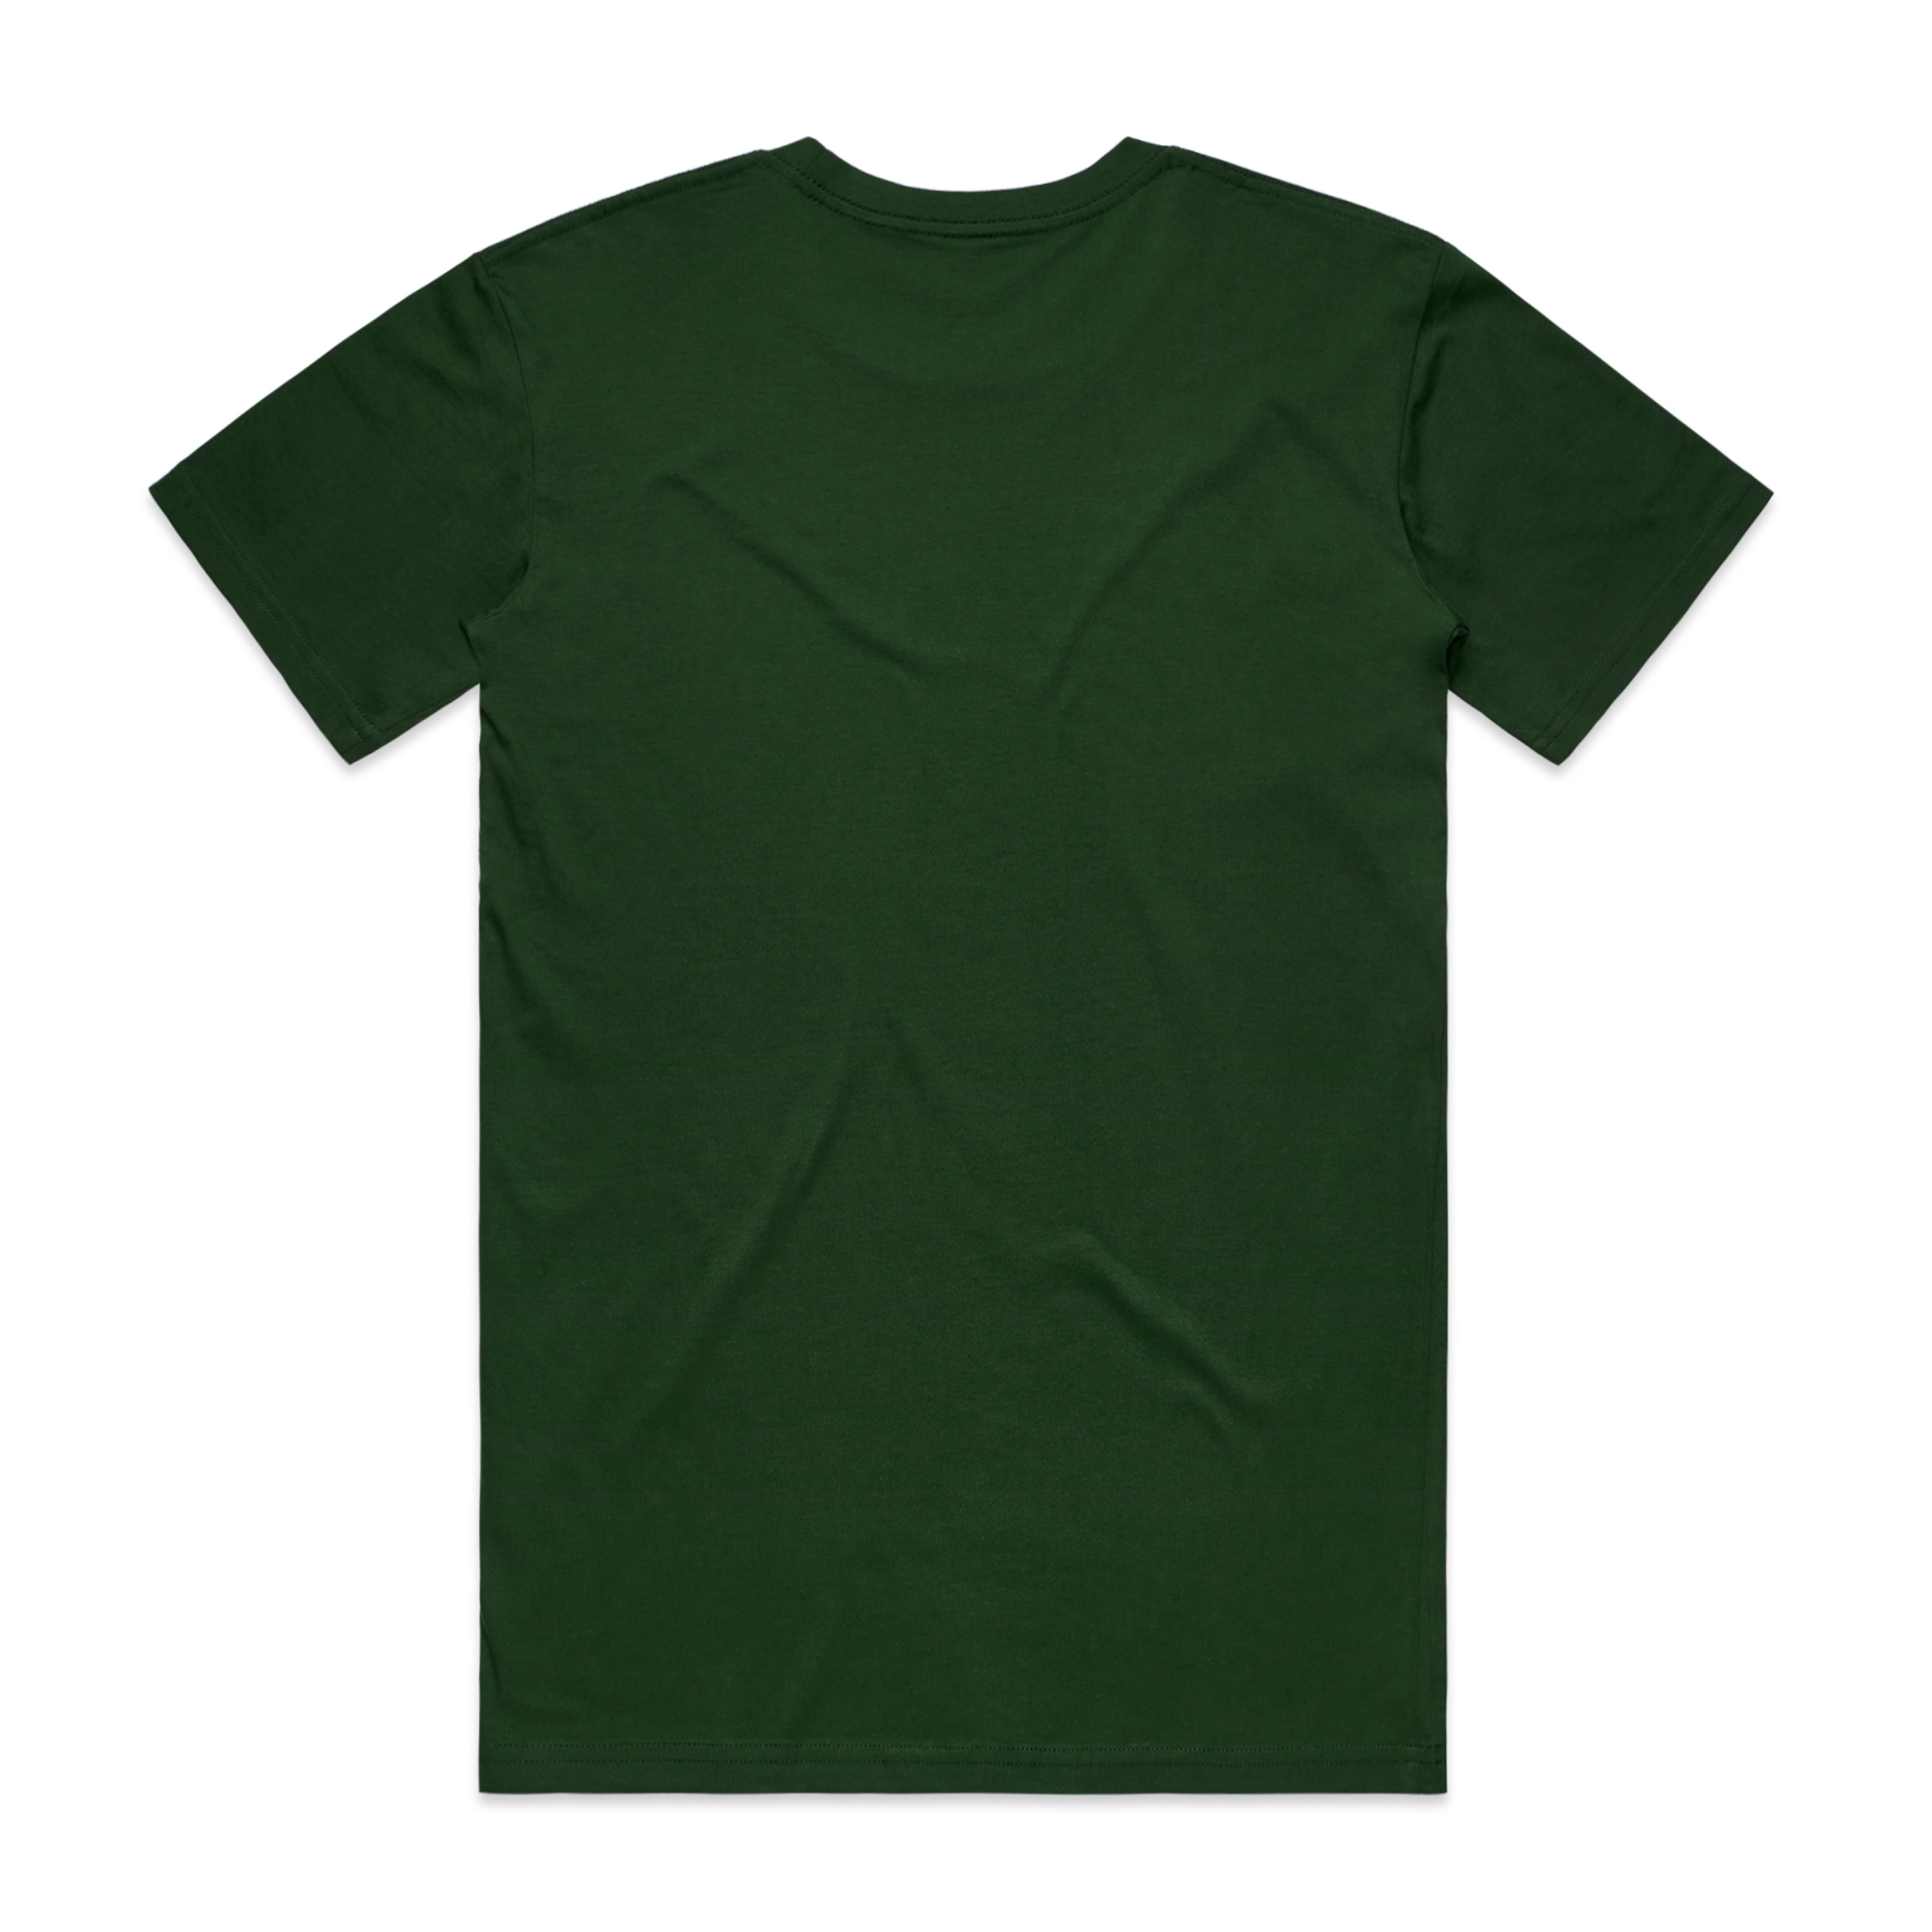 FOREST GREEN - BACK